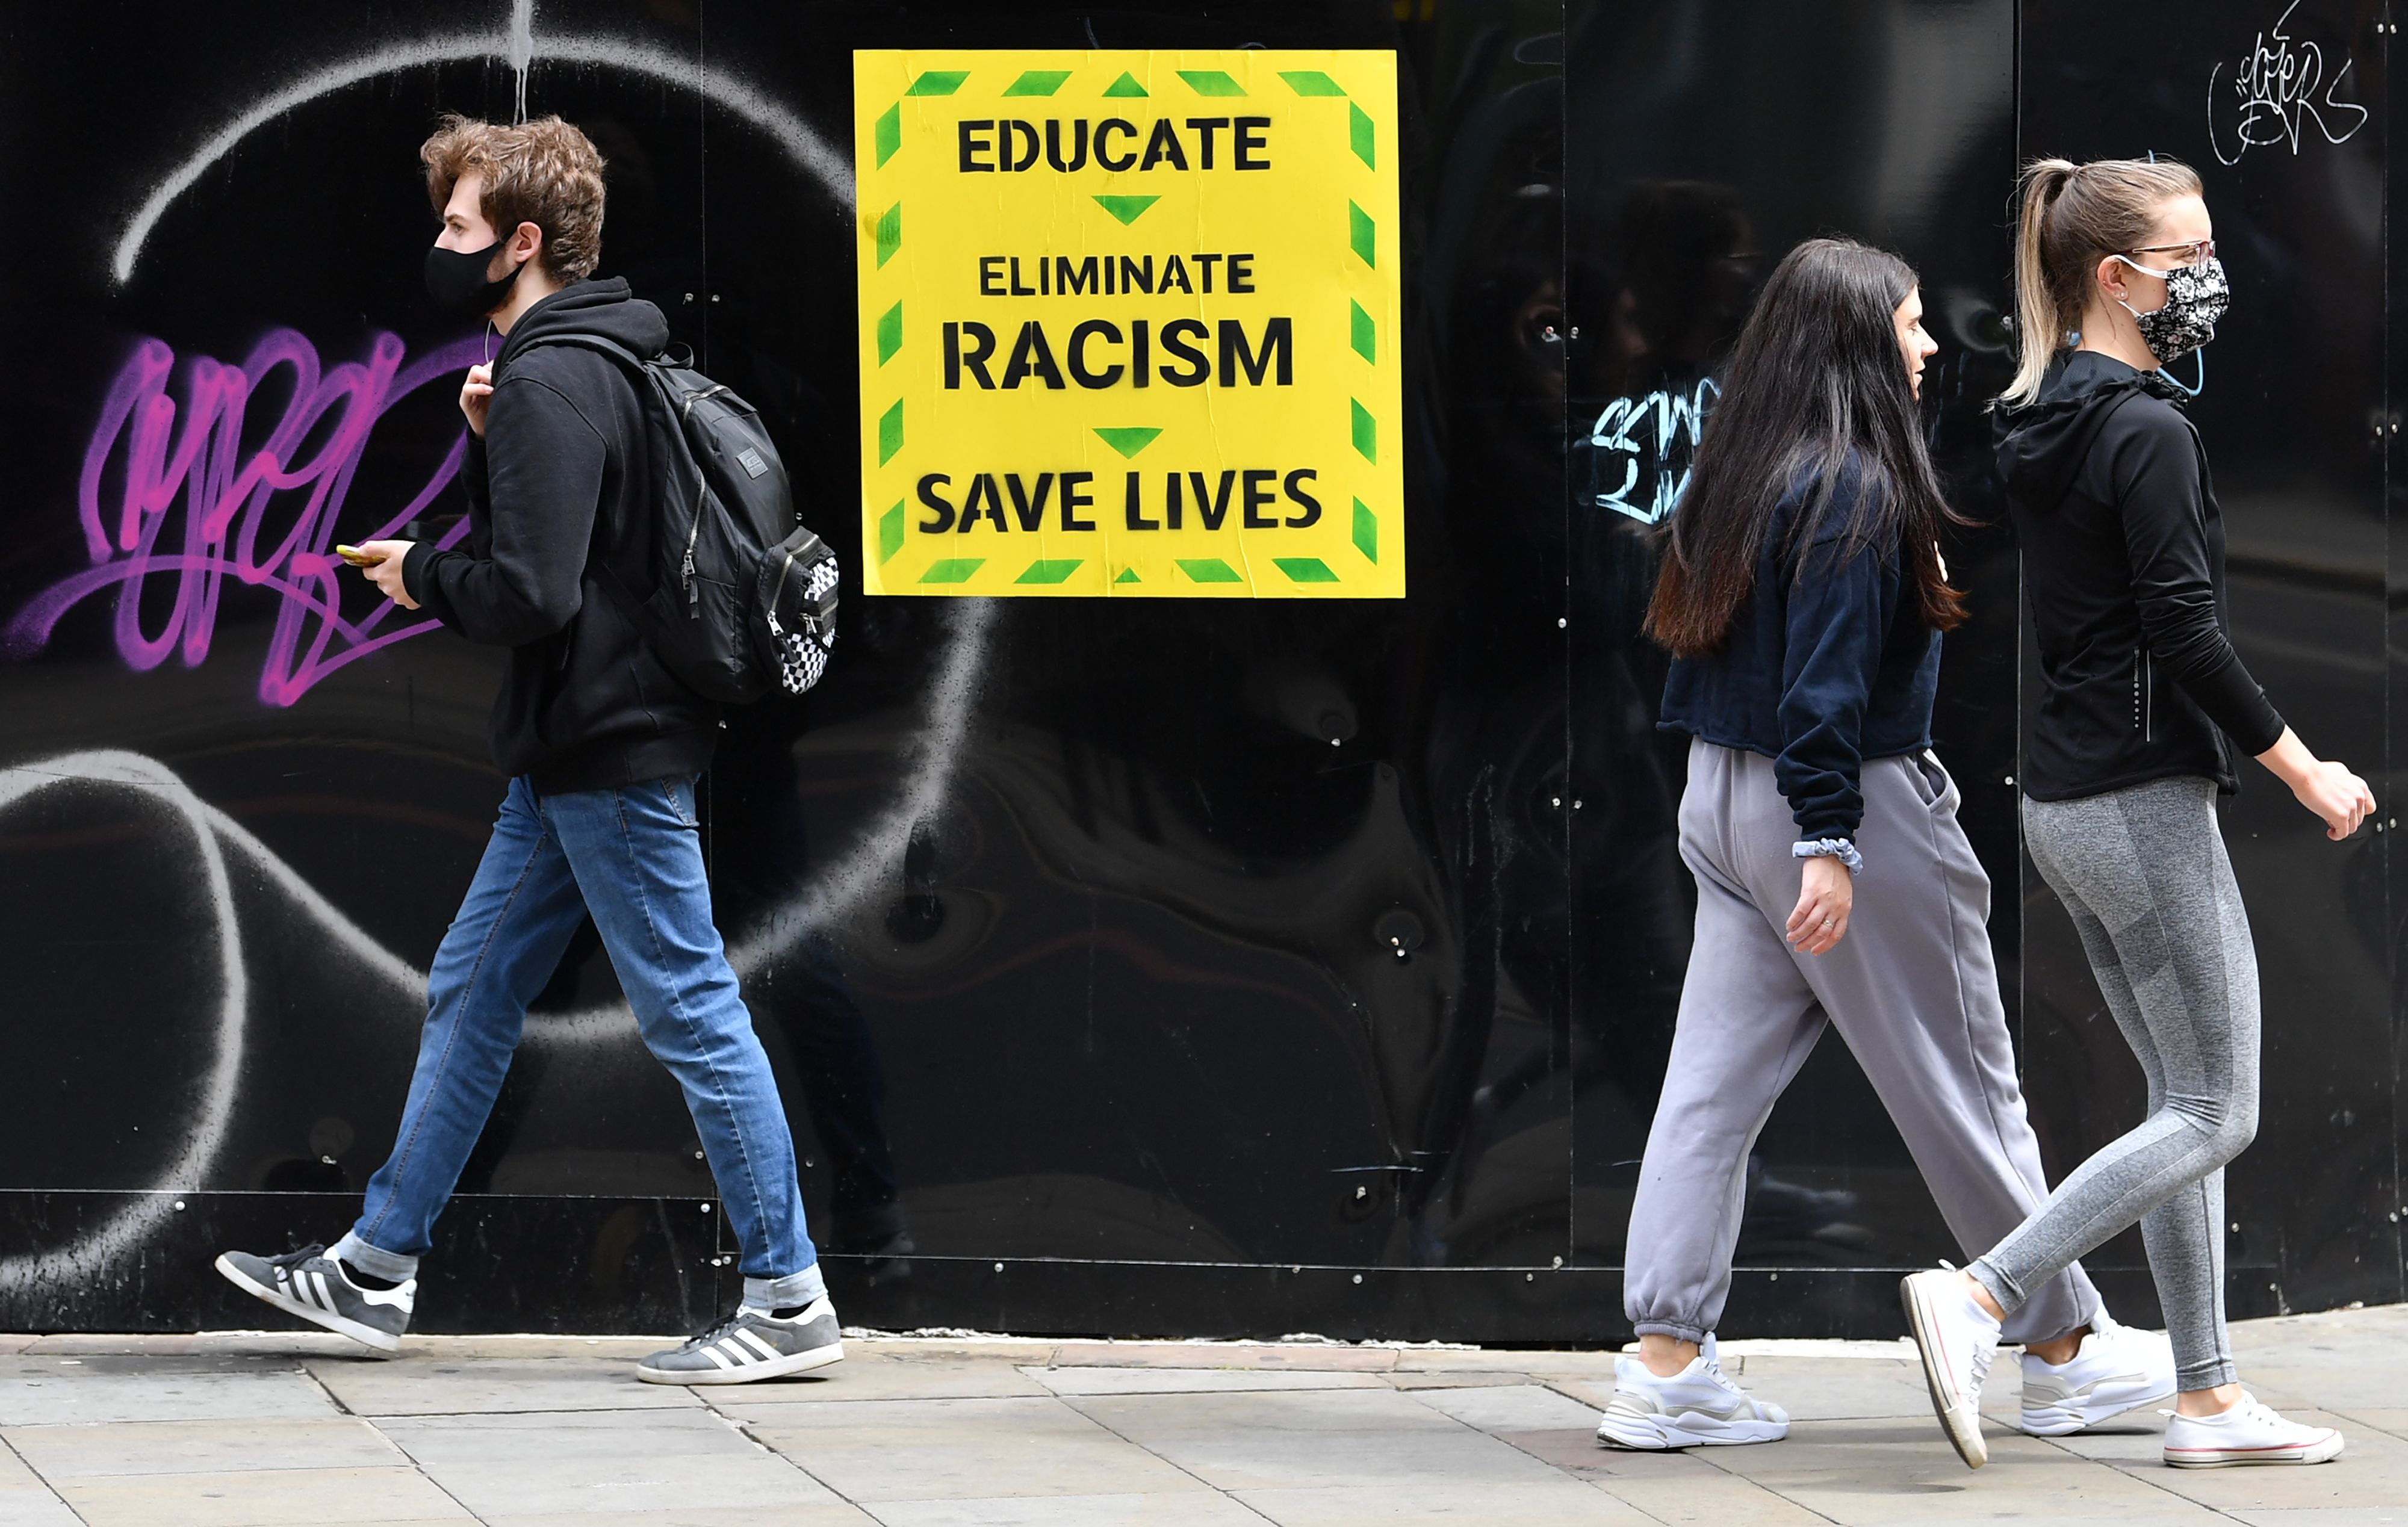 """Pedestrians wearing PPE (personal protective equipment), including a face mask as a precautionary measure against COVID-19, walk past an anti-racism poster in the them of the British government's Coronavirus slogan, near a demonstration in Manchester, northern England, on June 6, 2020, to show solidarity with the Black Lives Matter movement in the wake of the killing of George Floyd, an unarmed black man who died after a police officer knelt on his neck in Minneapolis. - The United States braced Friday for massive weekend protests against racism and police brutality, as outrage soared over the latest law enforcement abuses against demonstrators that were caught on camera. With protests over last week's police killing of George Floyd, an unarmed black man, surging into a second weekend, President Donald Trump sparked fresh controversy by saying it was a """"great day"""" for Floyd. (Photo by Paul ELLIS / AFP) (Photo by PAUL ELLIS/AFP via Getty Images)"""